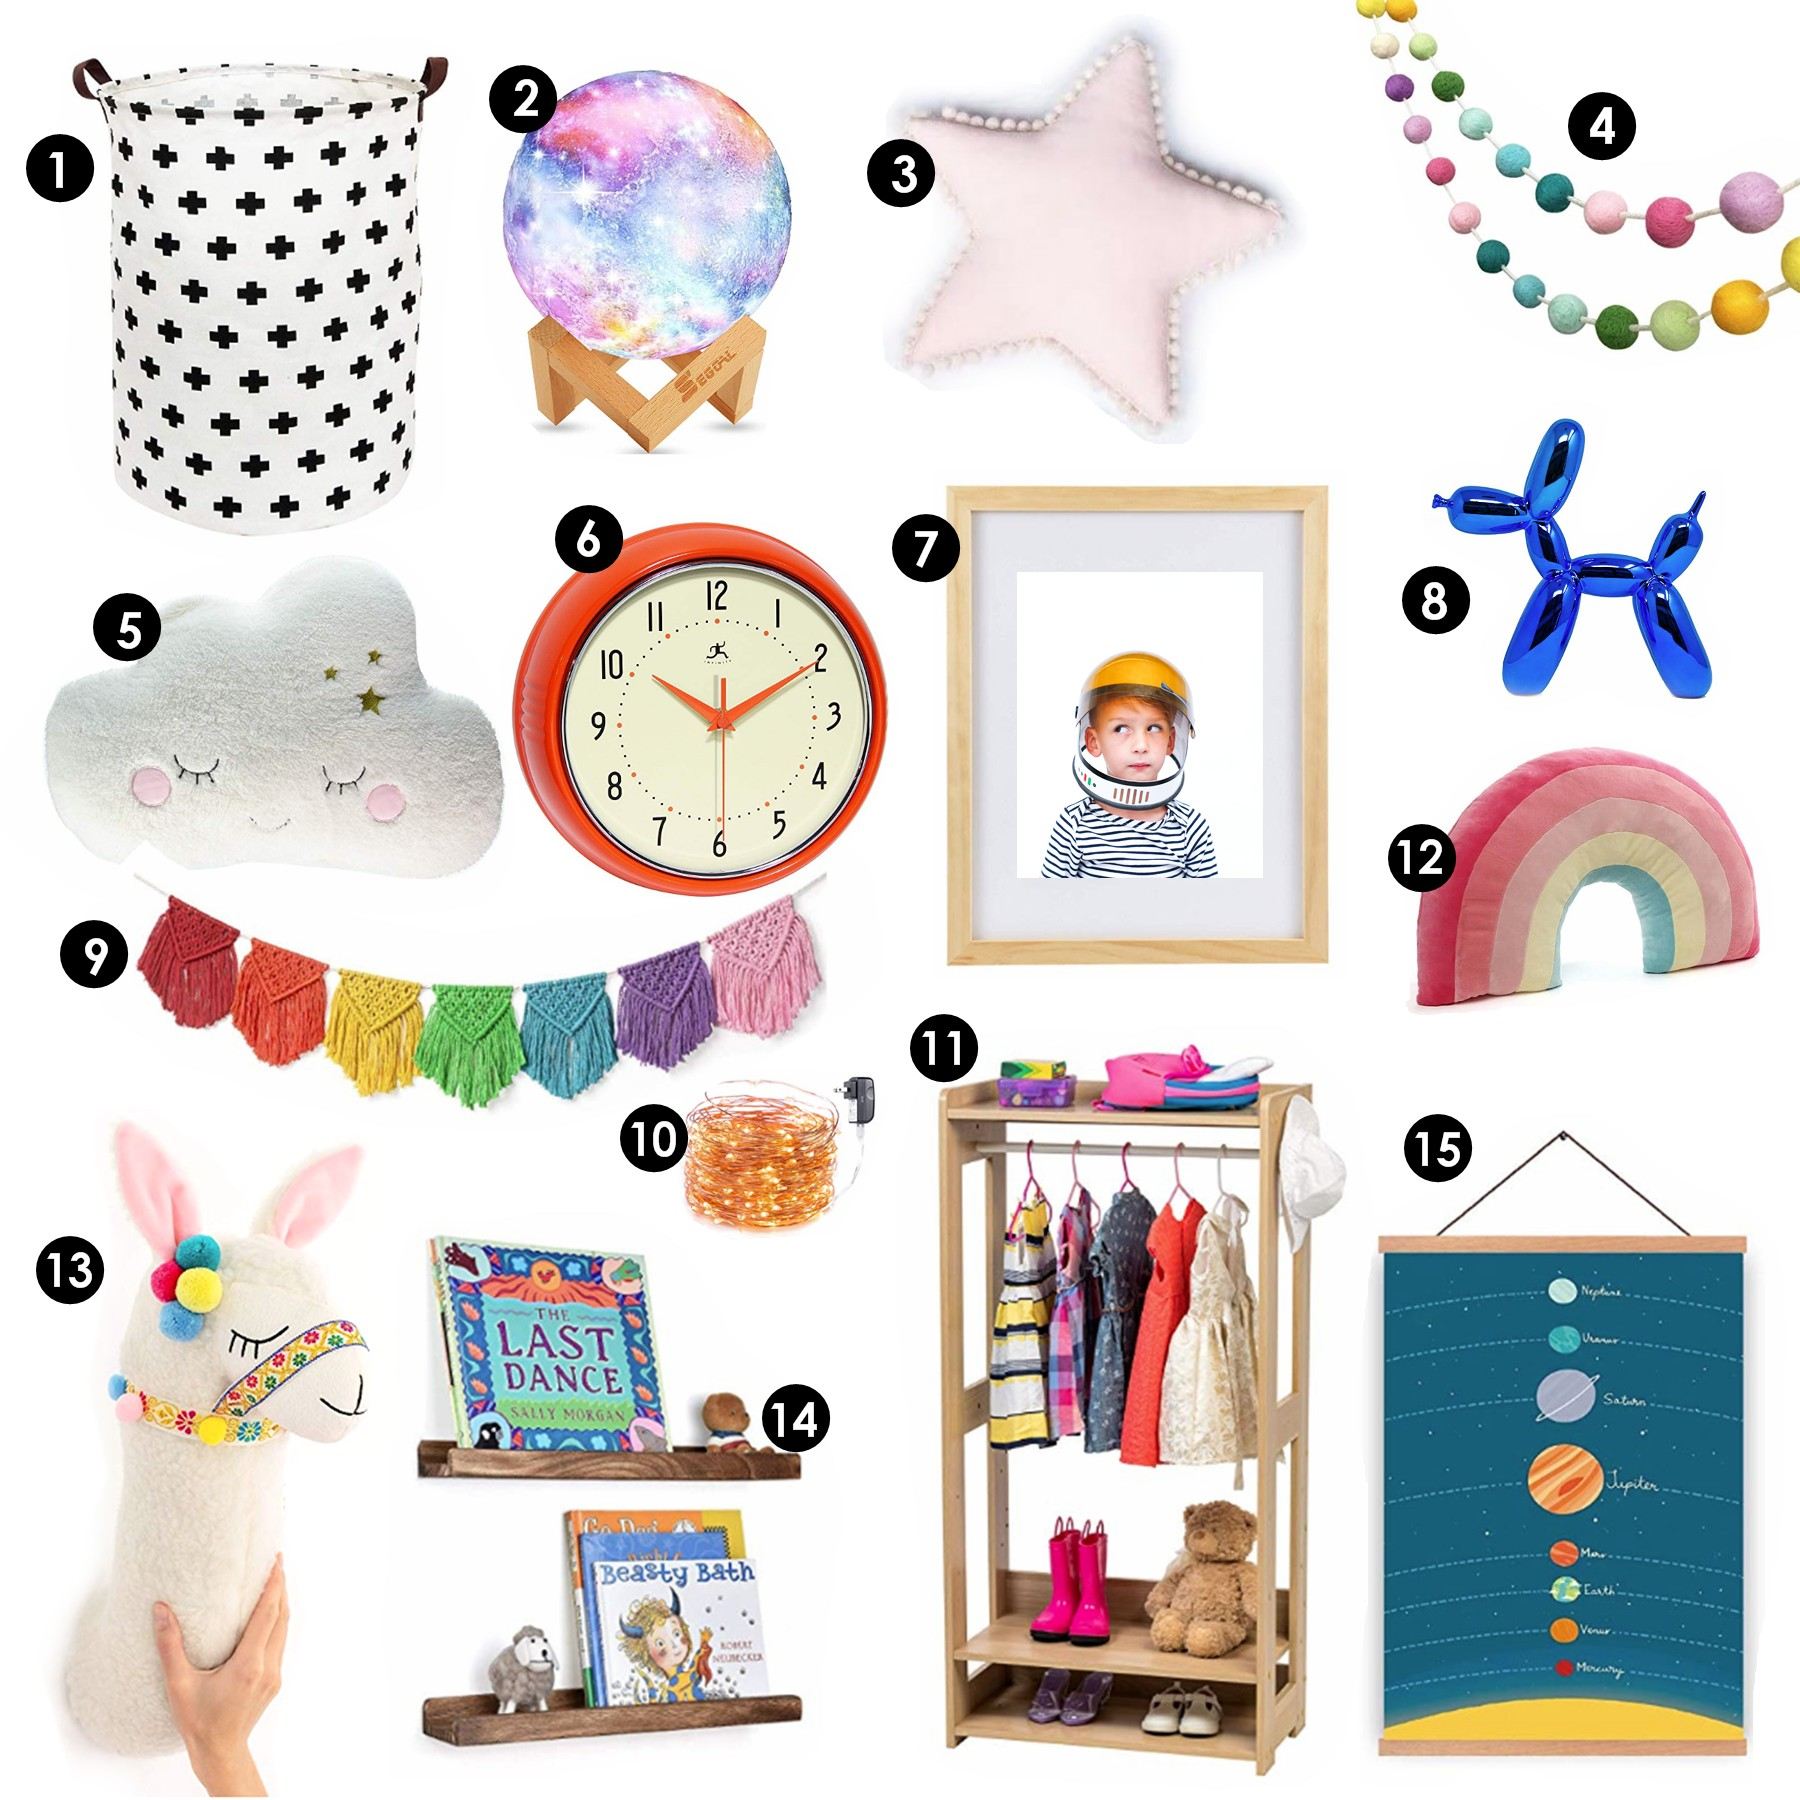 Ethiopian Crosses In Feb Mar Elle Decor: Inexpensive Kid Room Decor Finds From Amazon